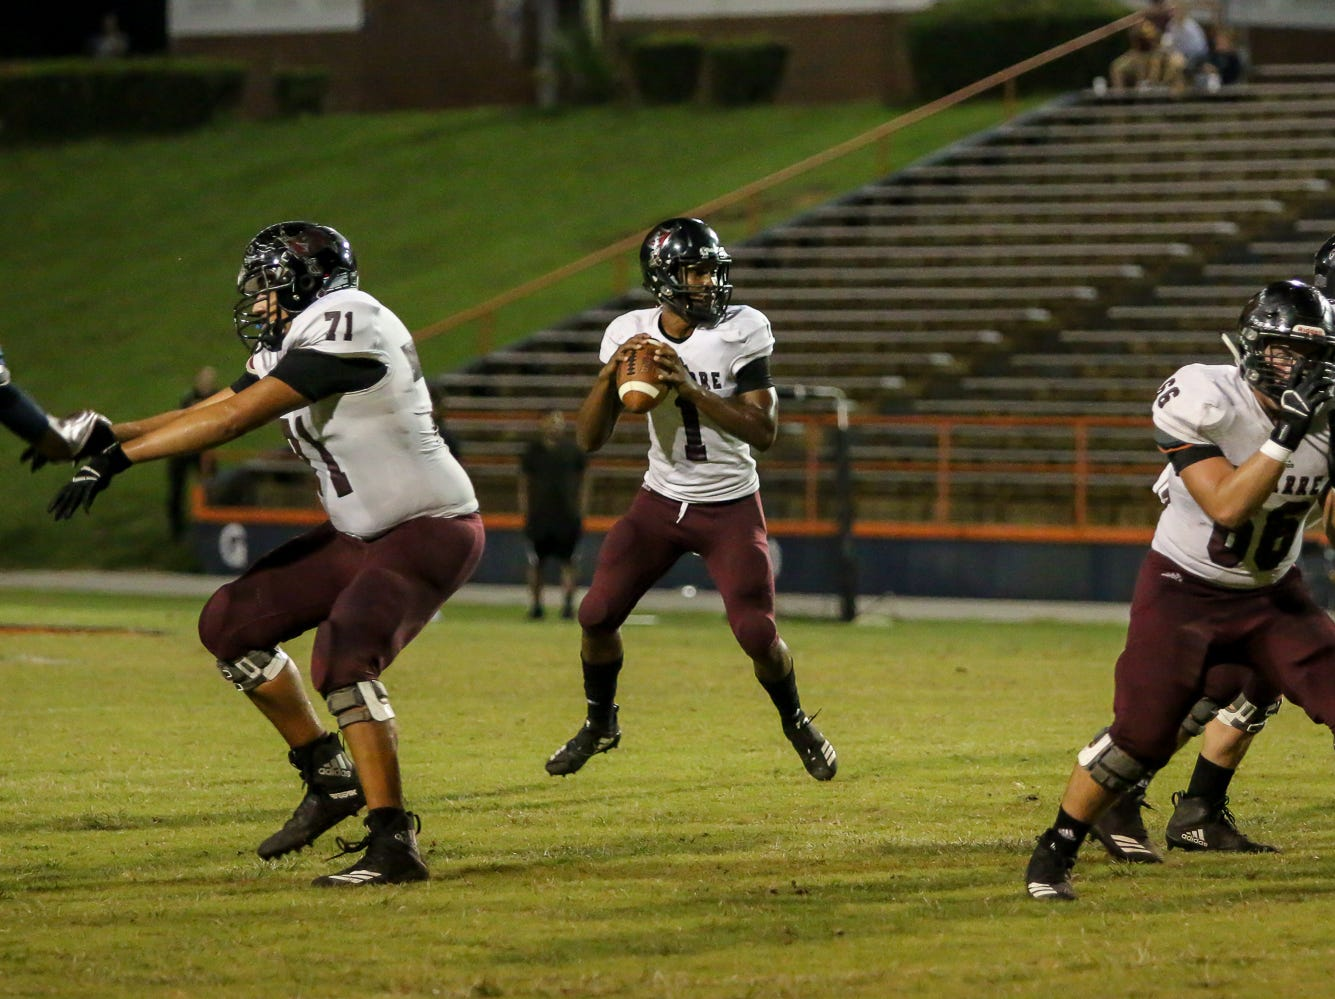 Navarre quarterback Marlon Courtney III (1) stands comfortably in the pocket before throwing a pass against the Gators in the homecoming game at Escambia High School on Friday, October 5, 2018.